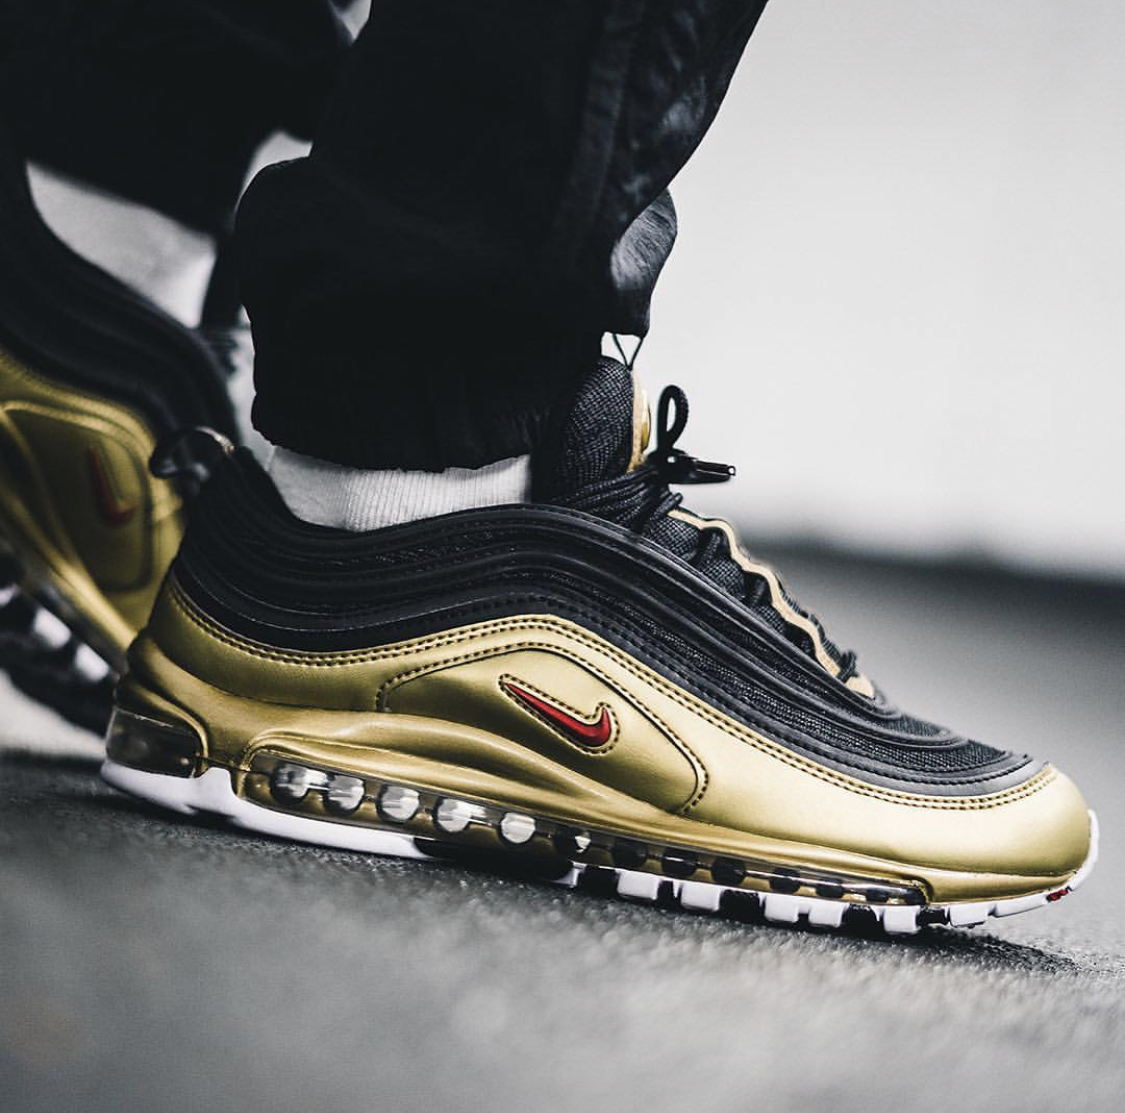 08a96f44f9681 Now Available: Nike Air Max 97 QS